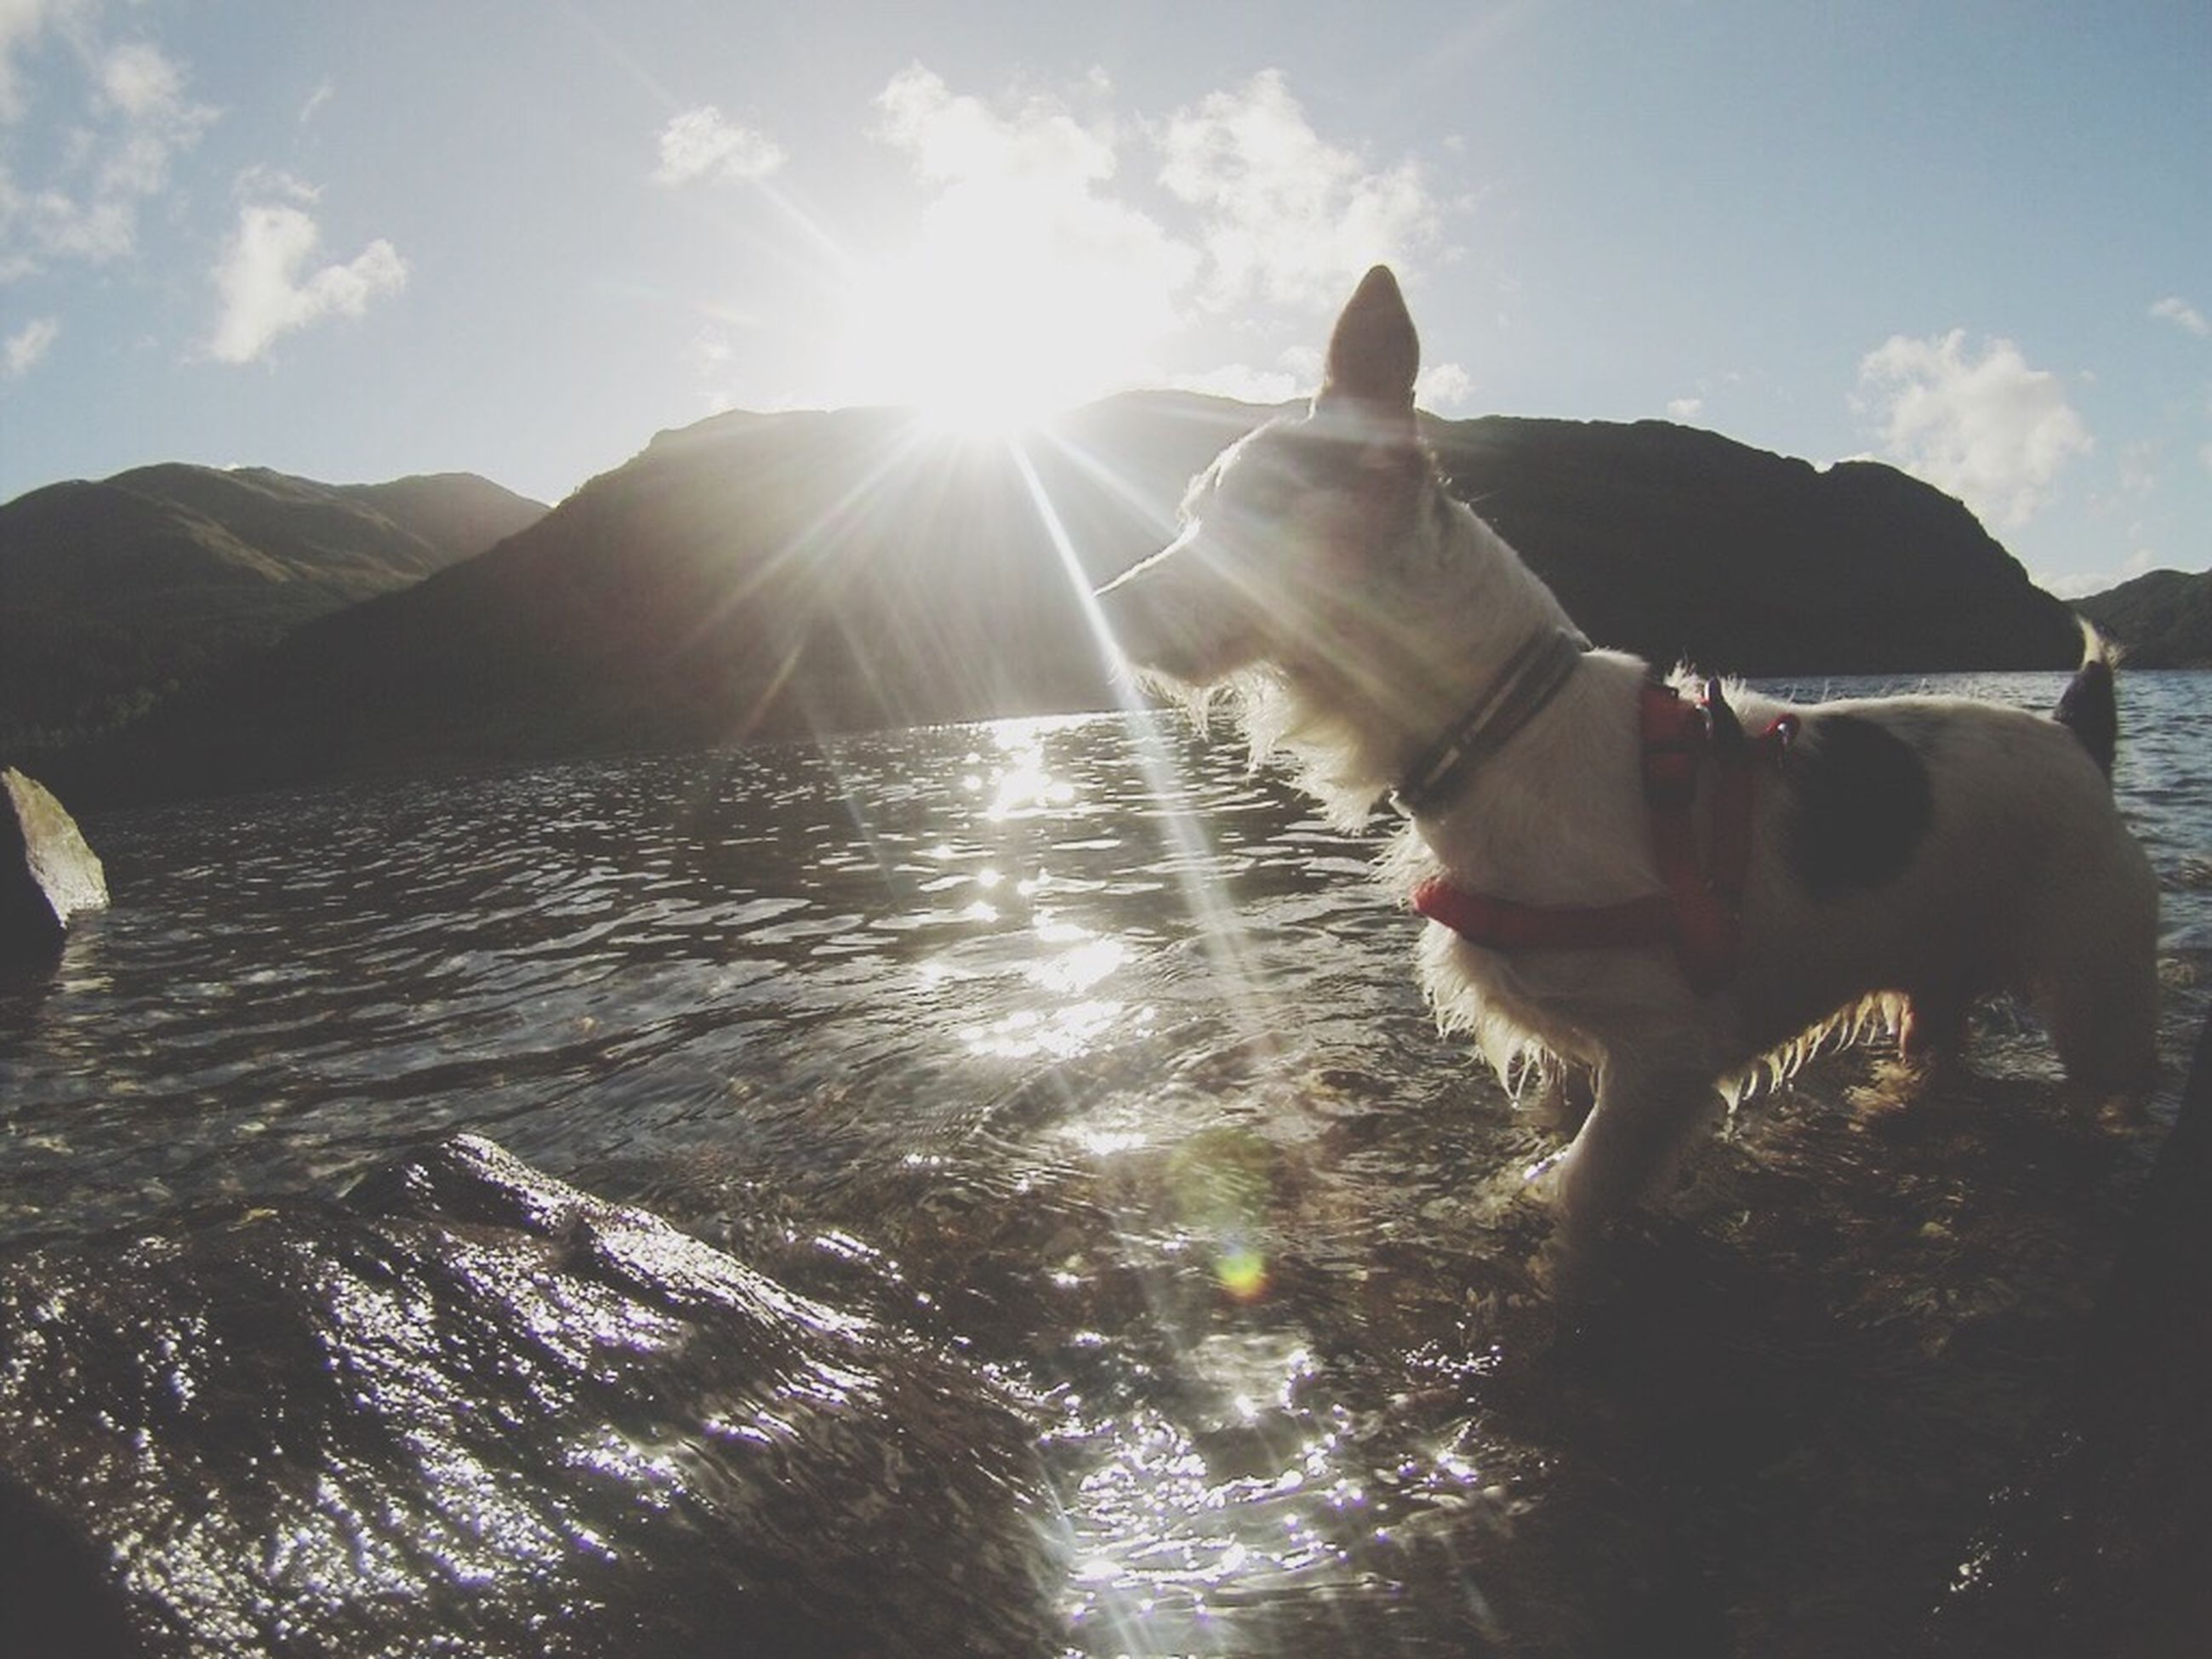 sun, sunbeam, sunlight, water, lens flare, sky, domestic animals, animal themes, mammal, one animal, dog, pets, sunny, reflection, nature, mountain, tranquility, tranquil scene, beauty in nature, day